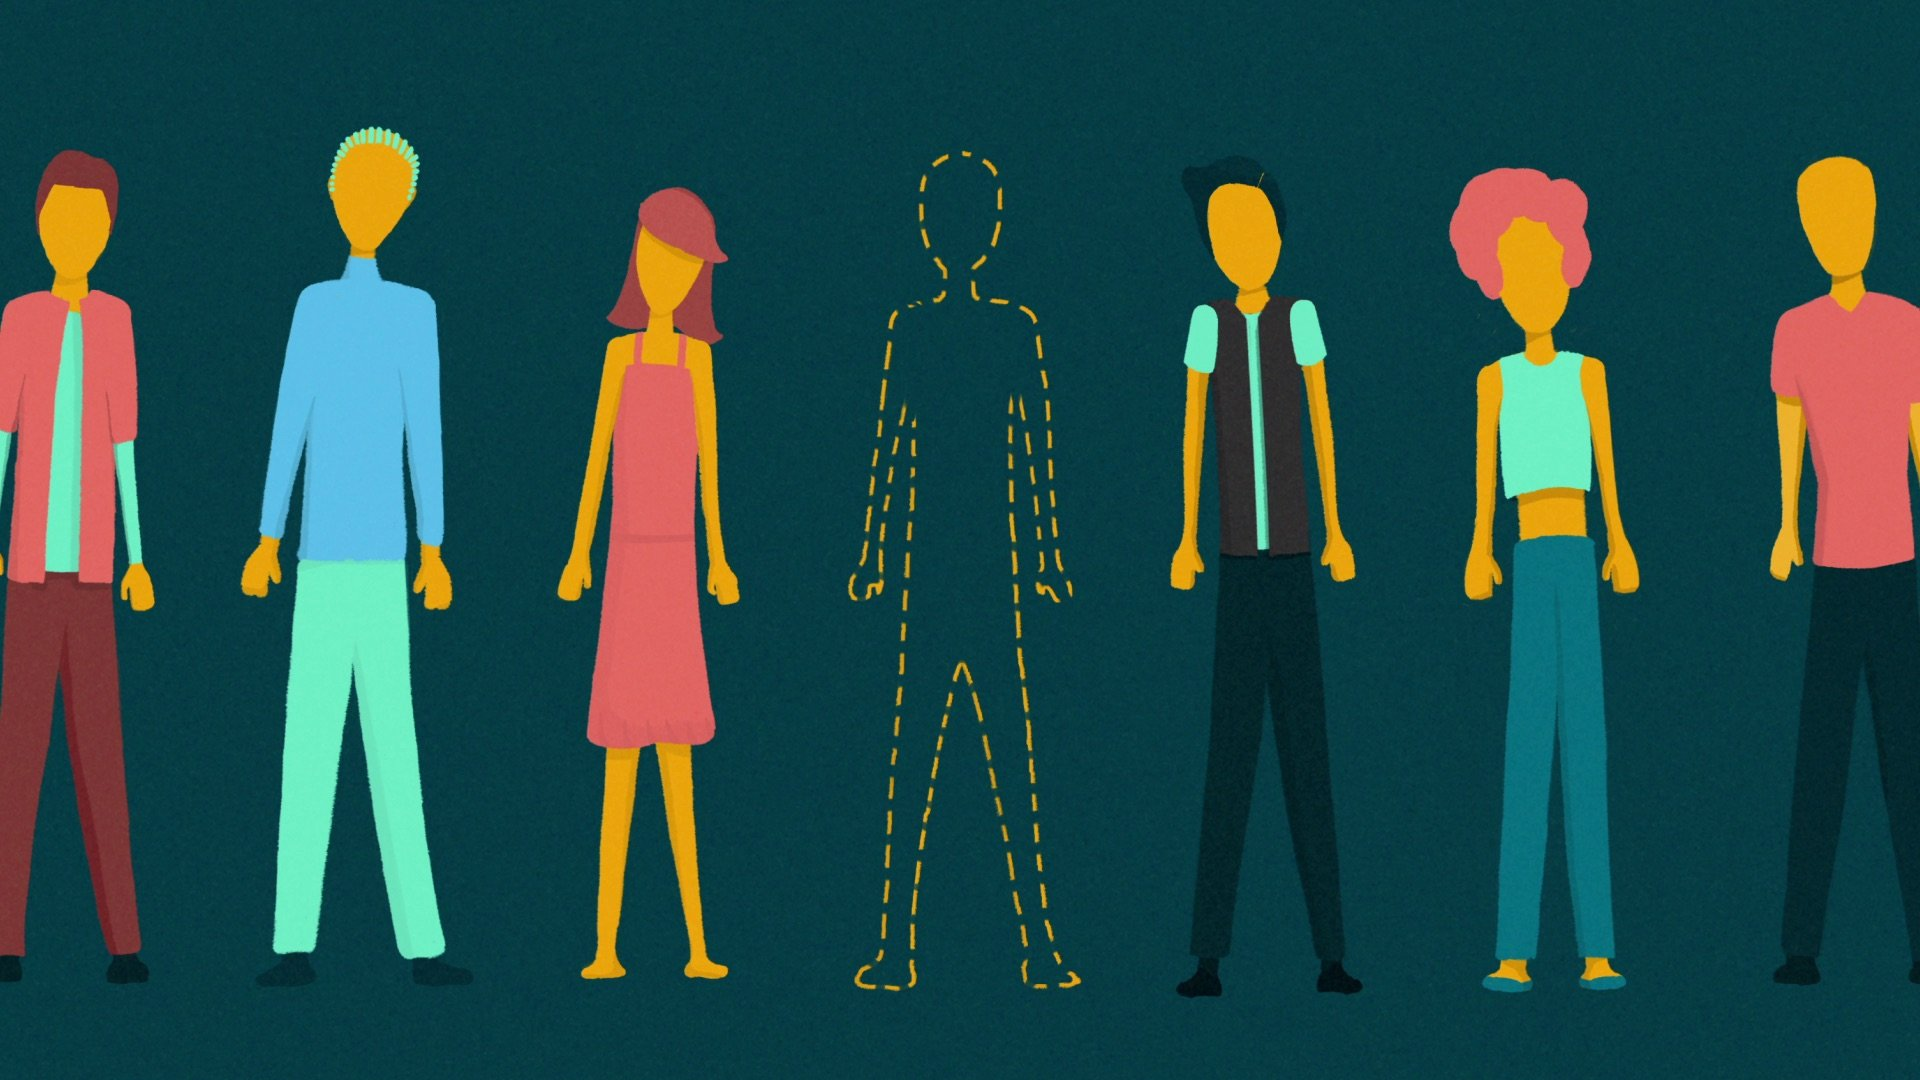 illustration for an explainer video animation for the Incidee app. It shows lots of people